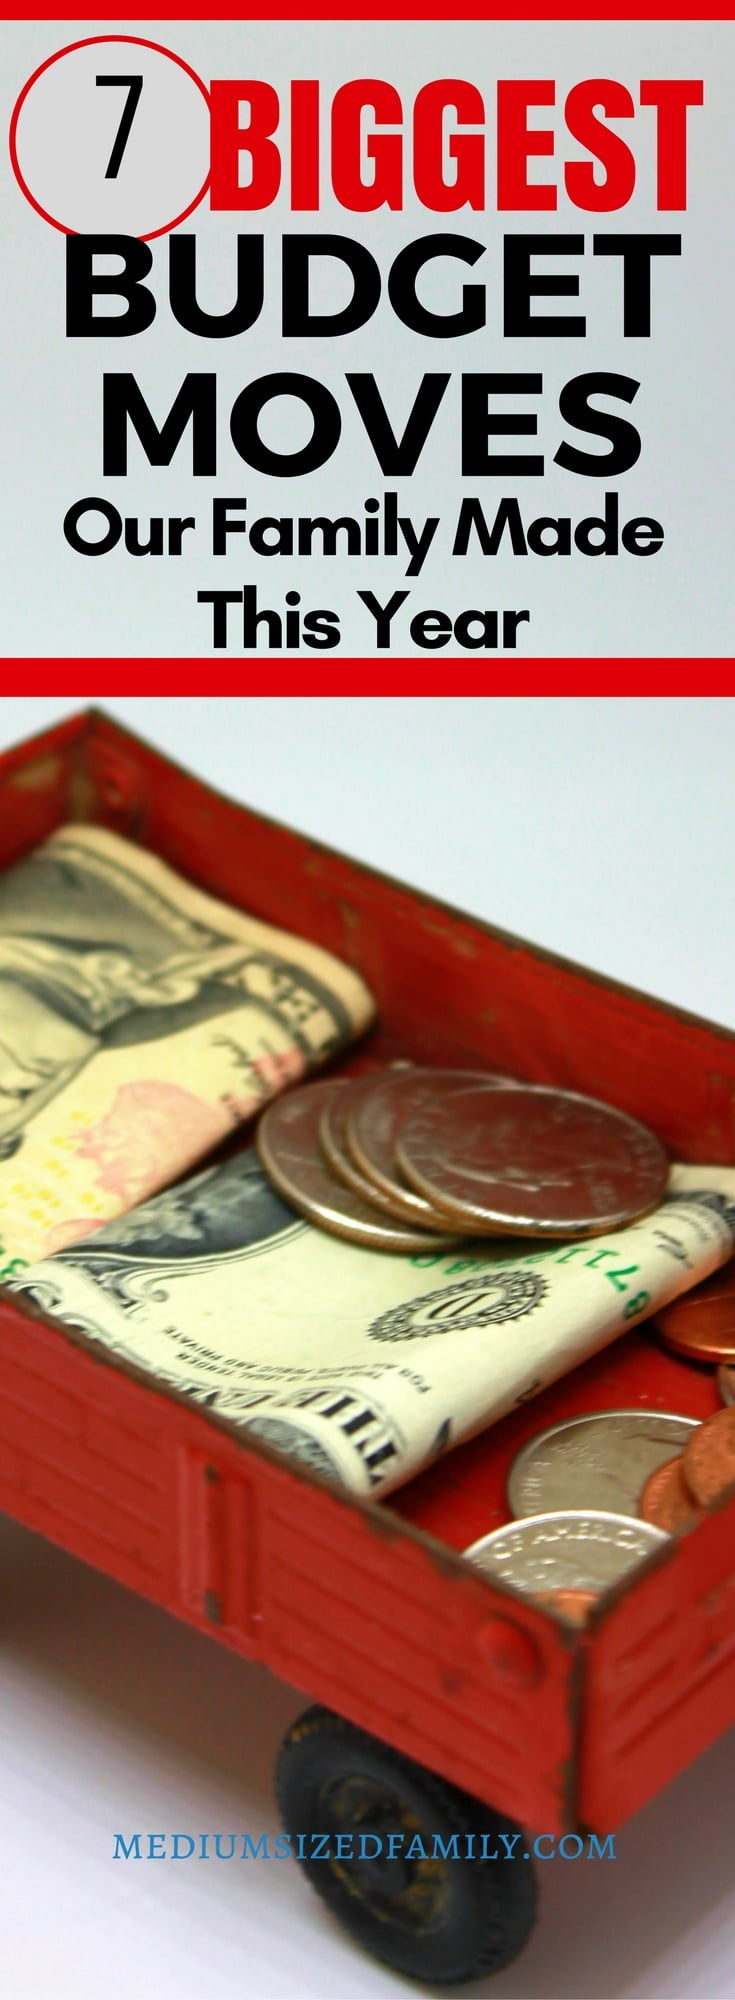 The best ways to save money and squeeze more from your budget.  #budgeting #savings